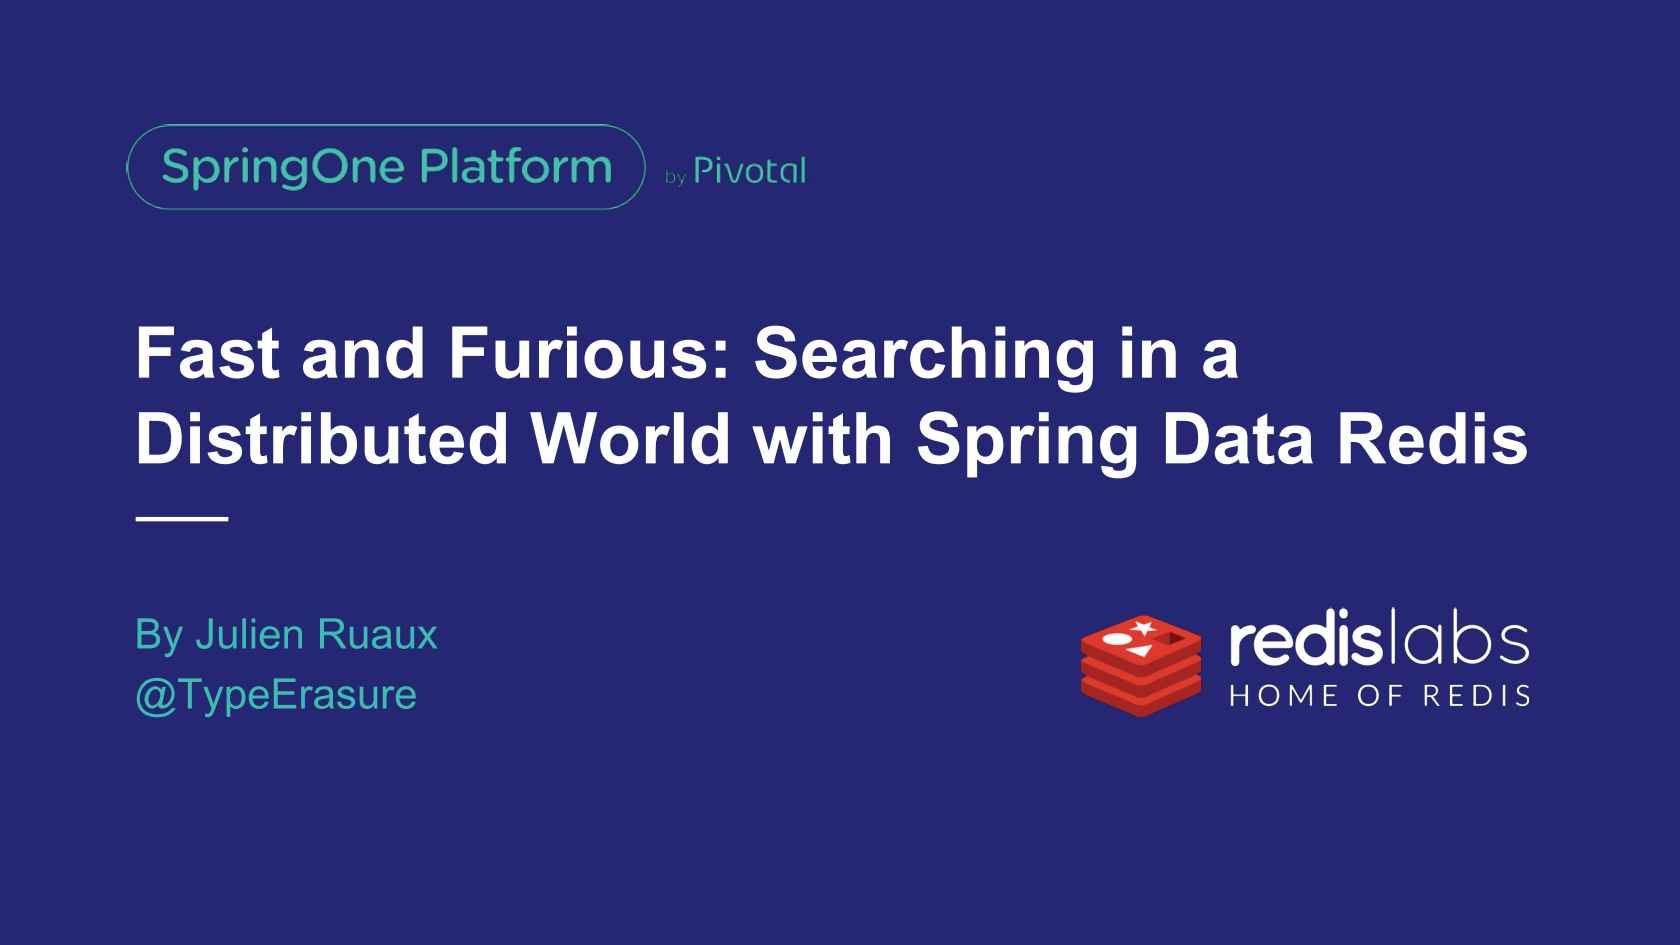 Fast and Furious: Searching in a Distributed World with Highly